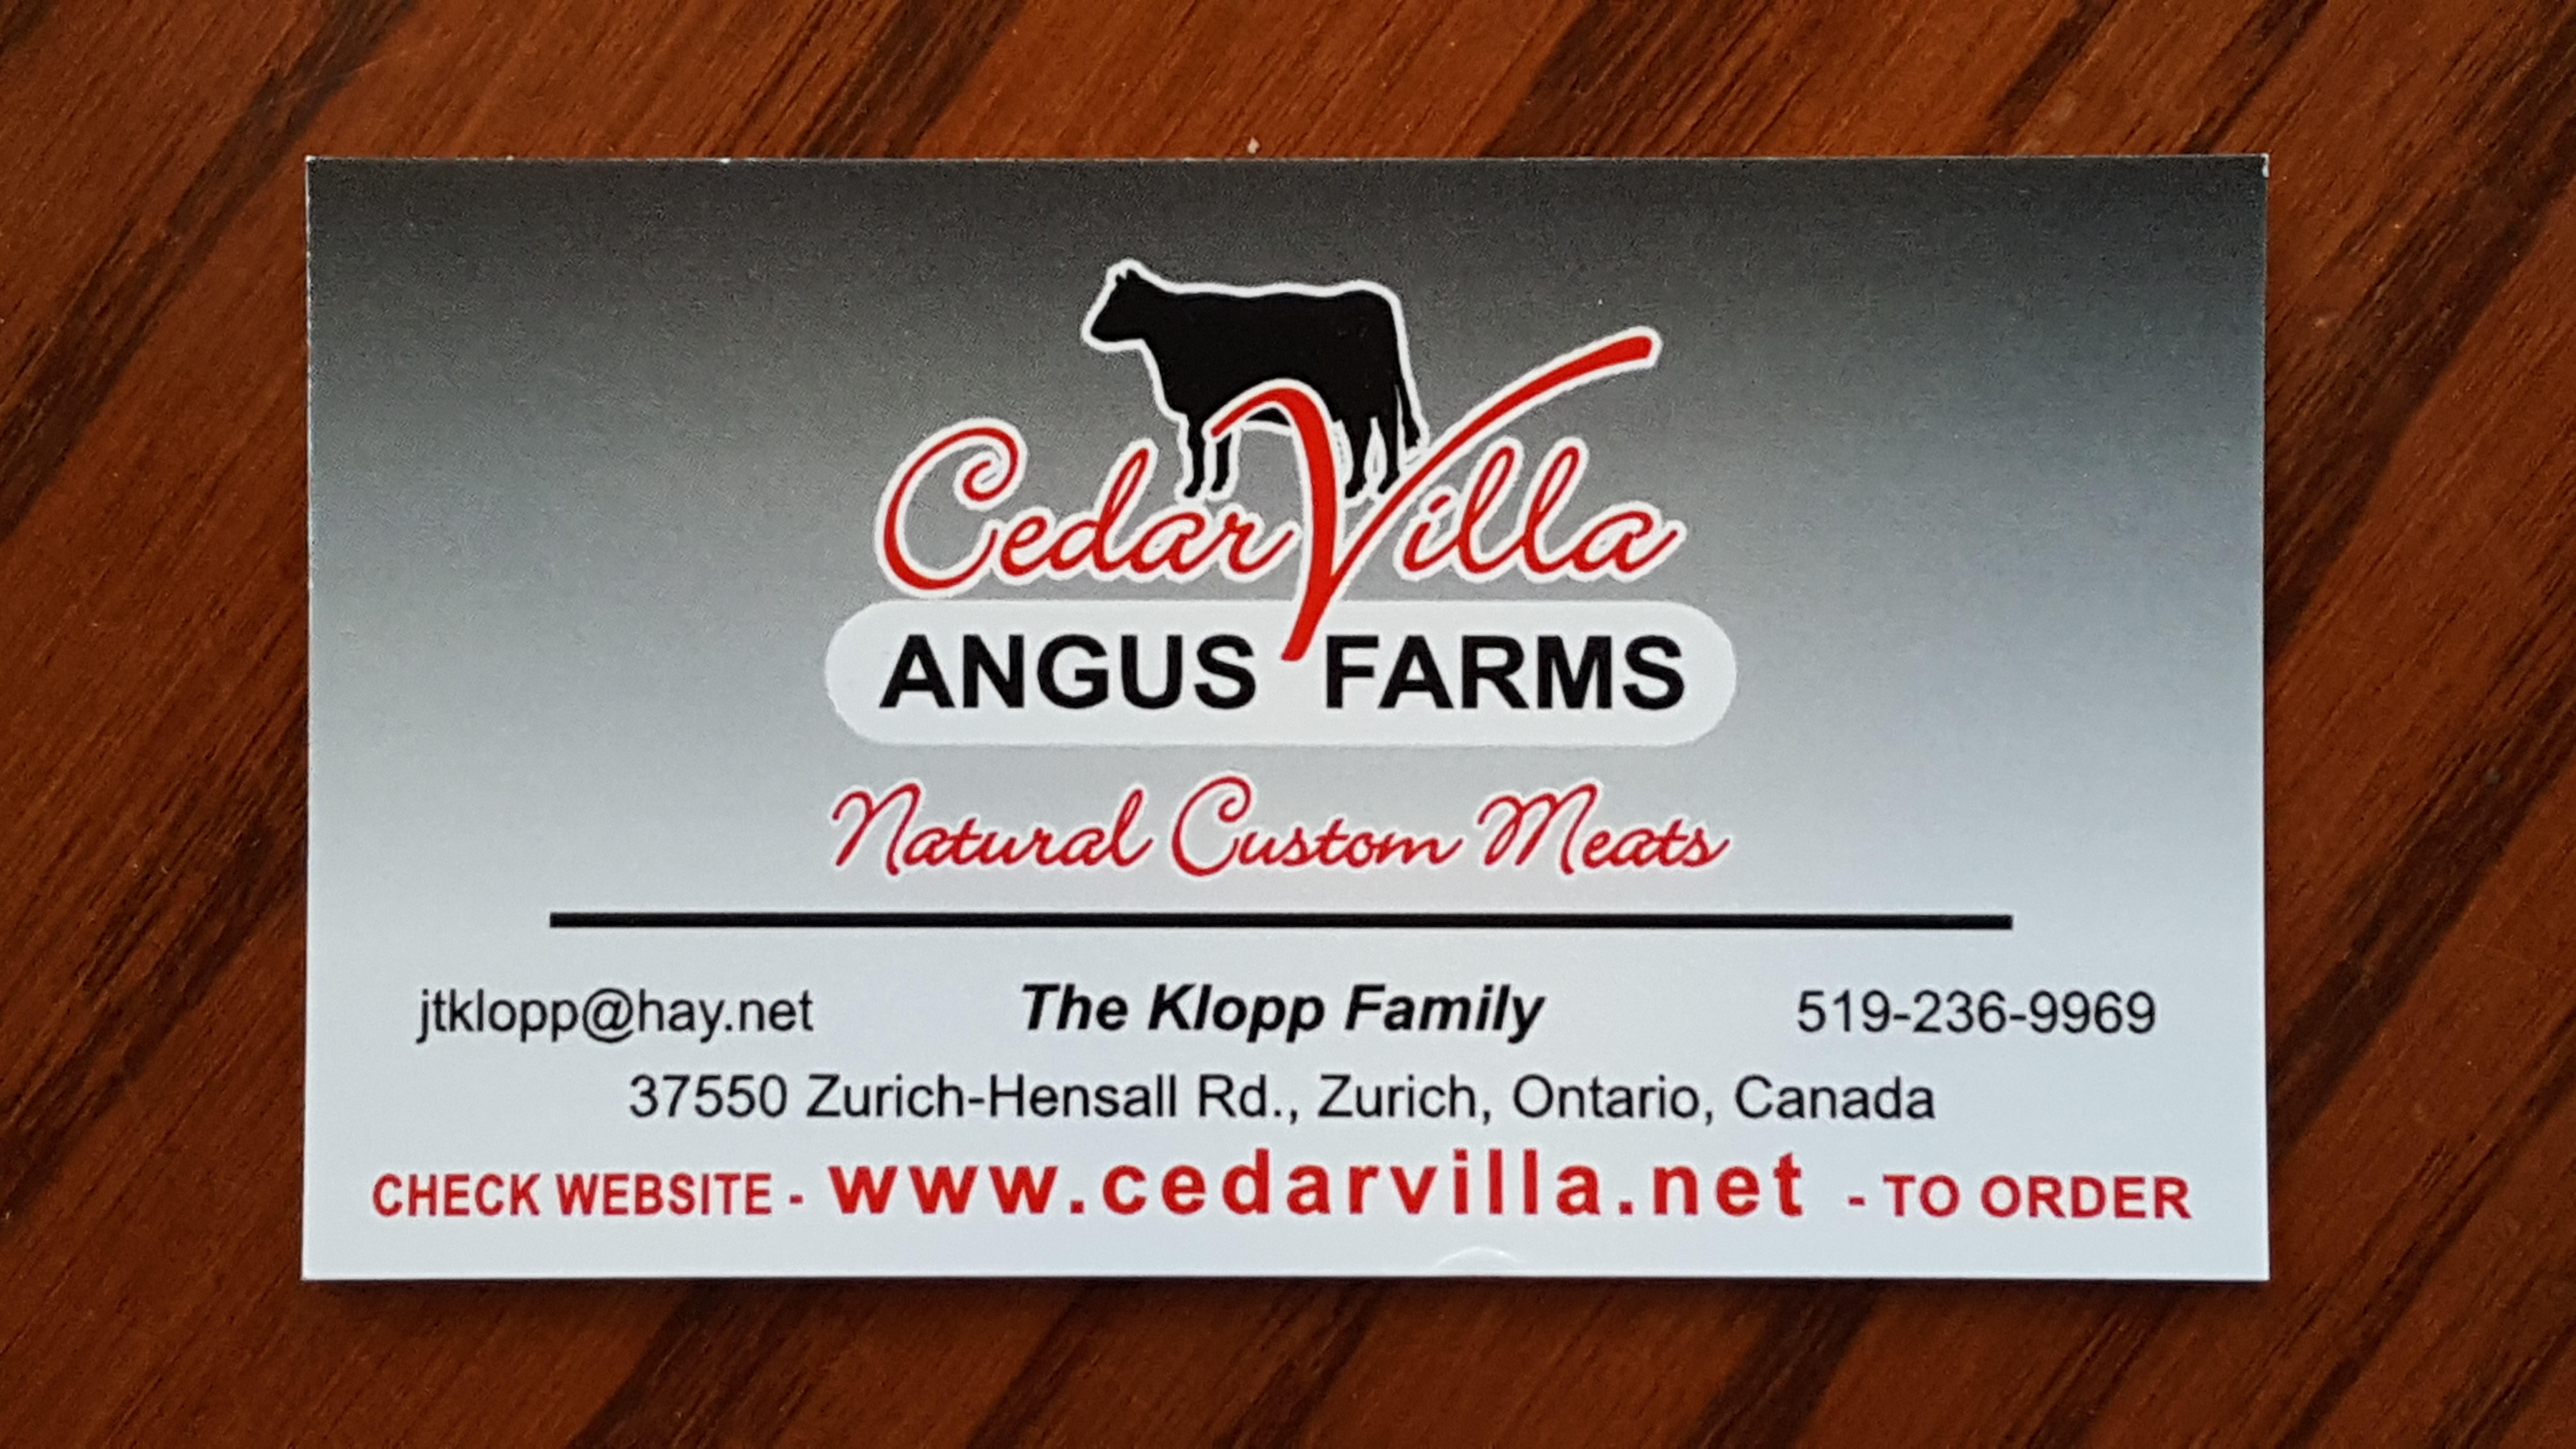 Cedar Villa Angus Farms